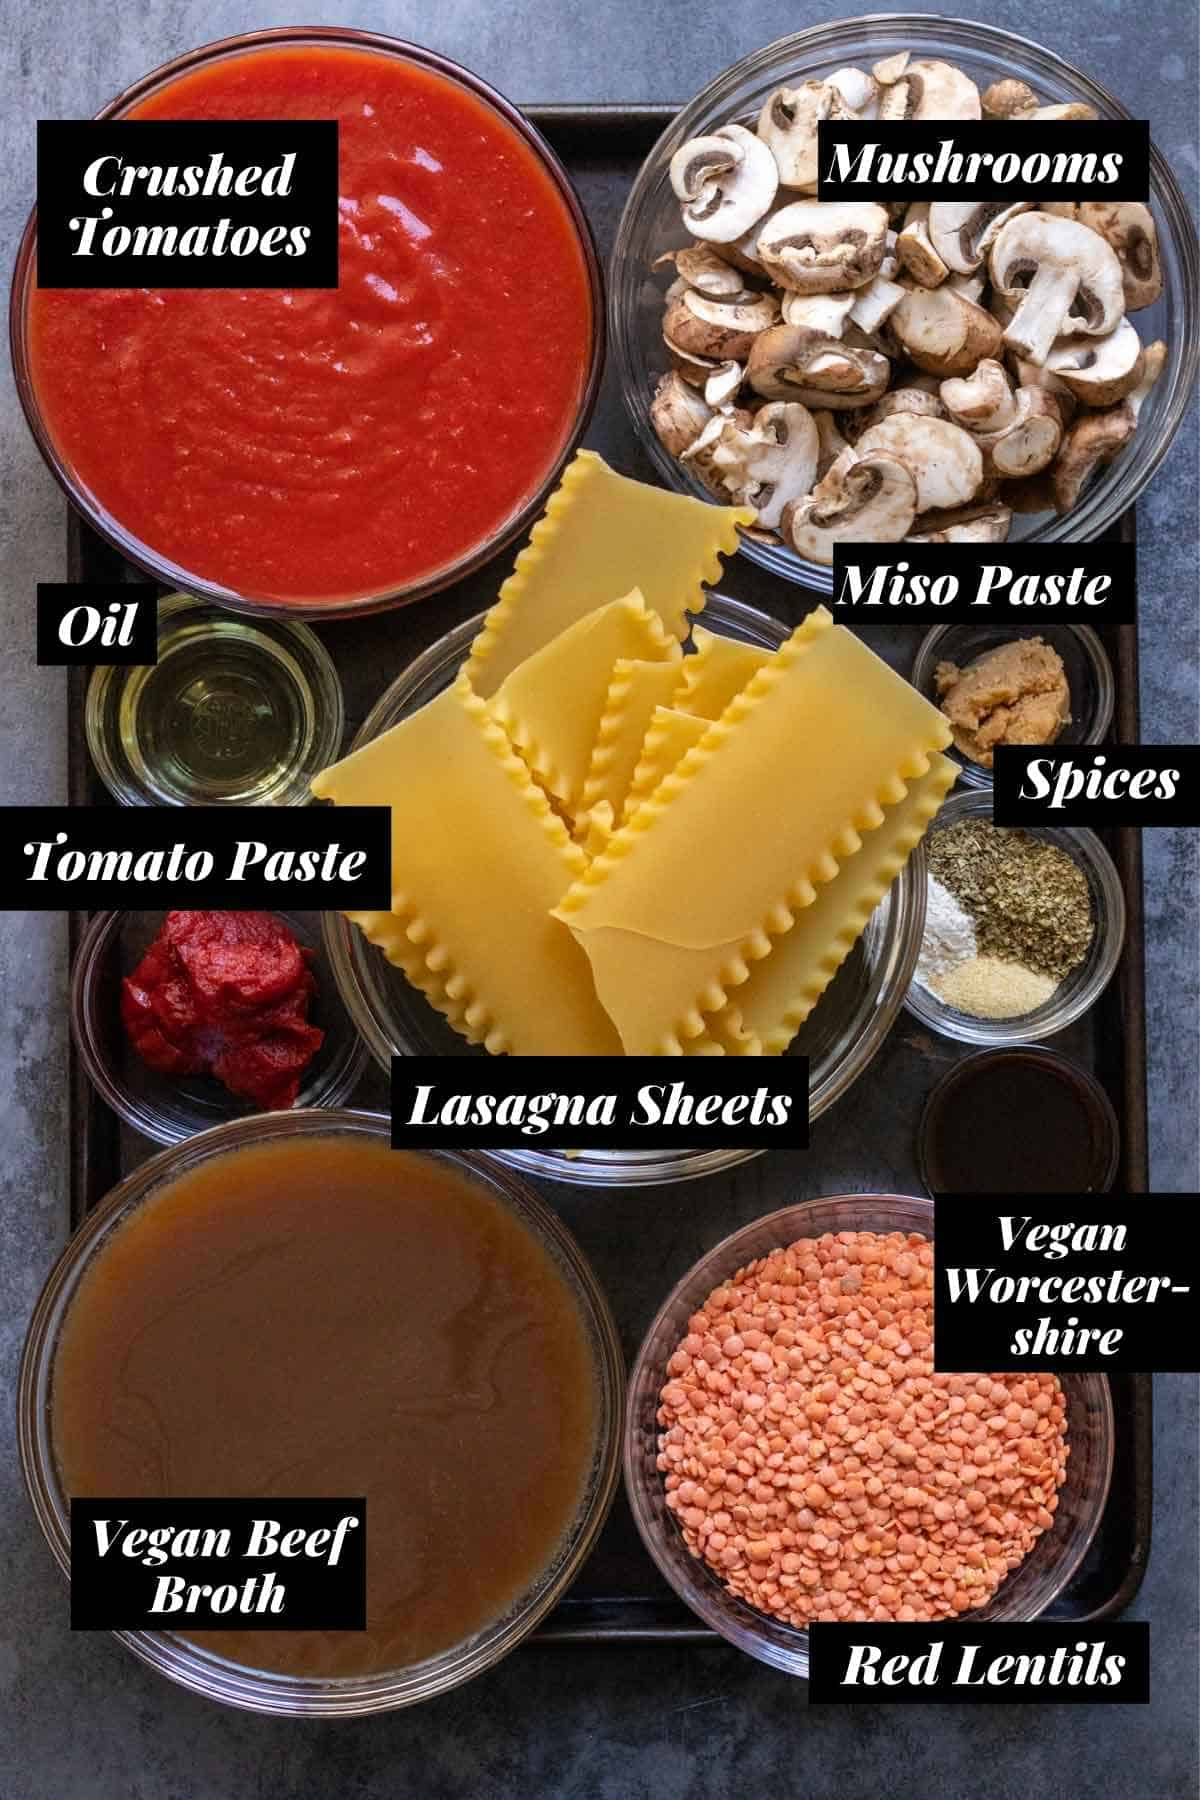 Ingredients needed for lasagna soup measured into individual bowls on cookie sheet with labels.